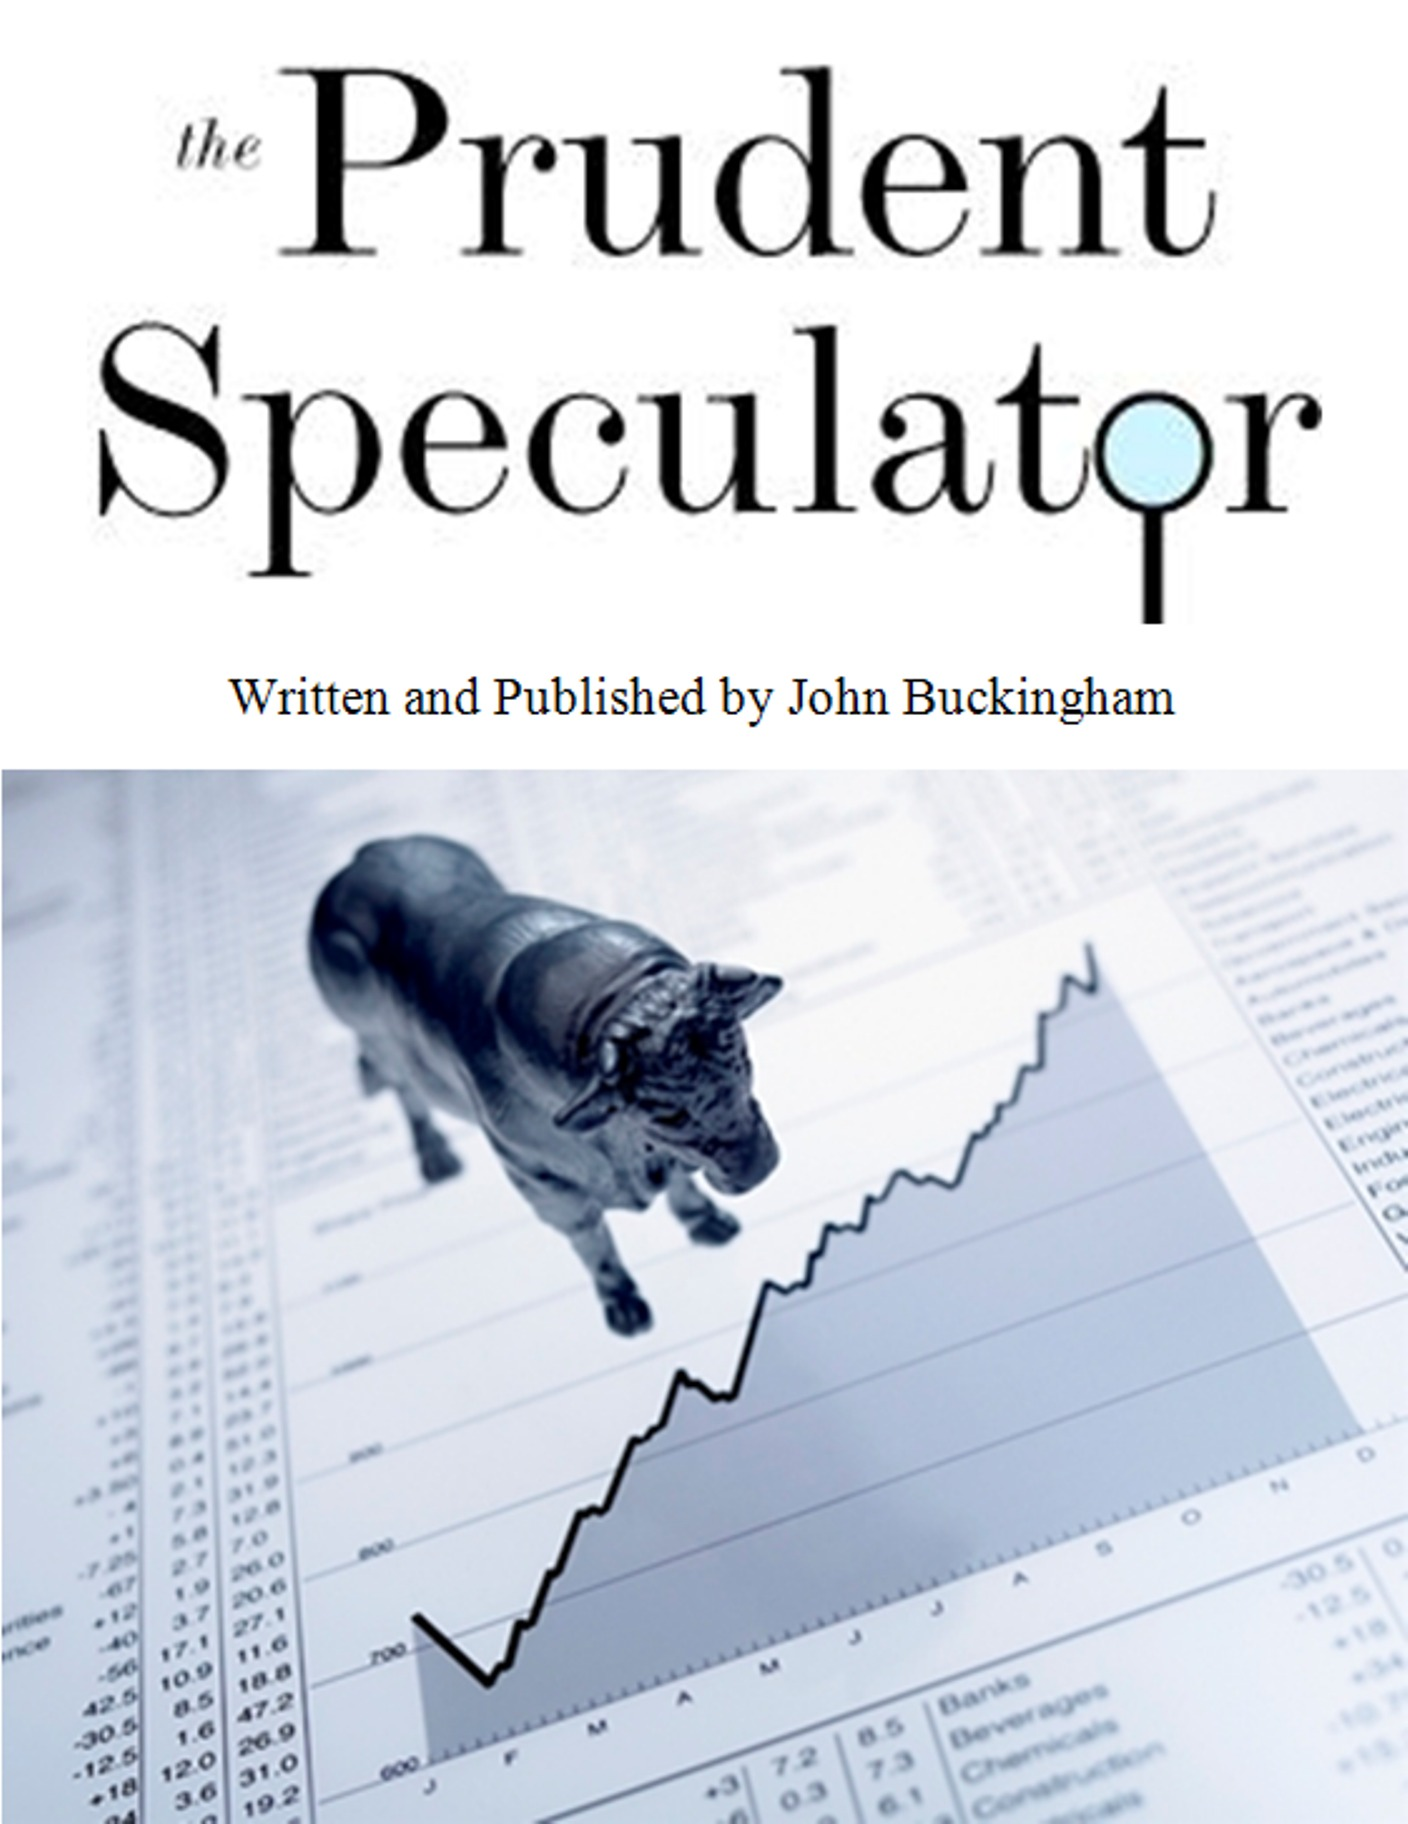 The Prudent Speculator: March 2013